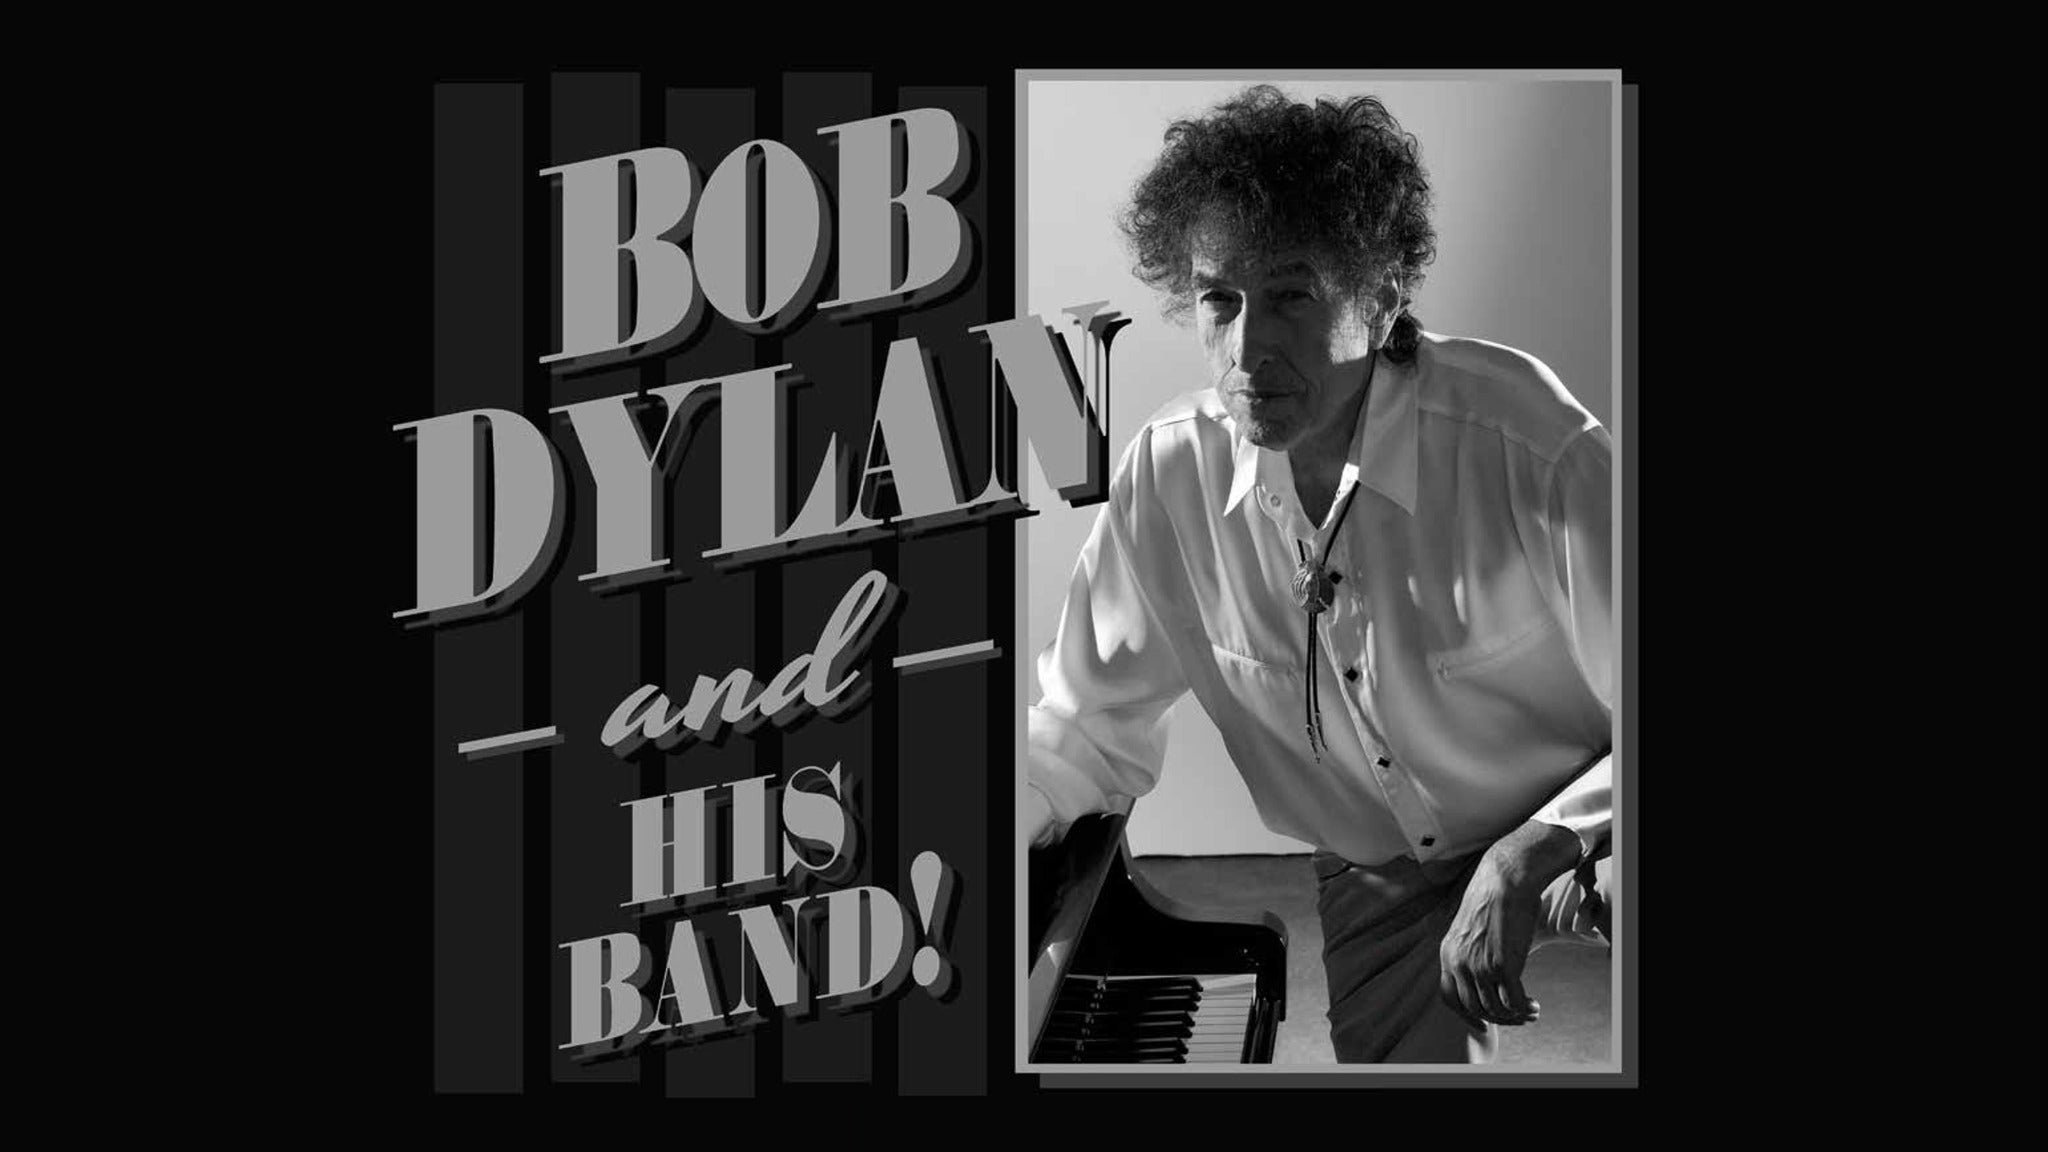 Bob Dylan & His Band at Wintrust Arena